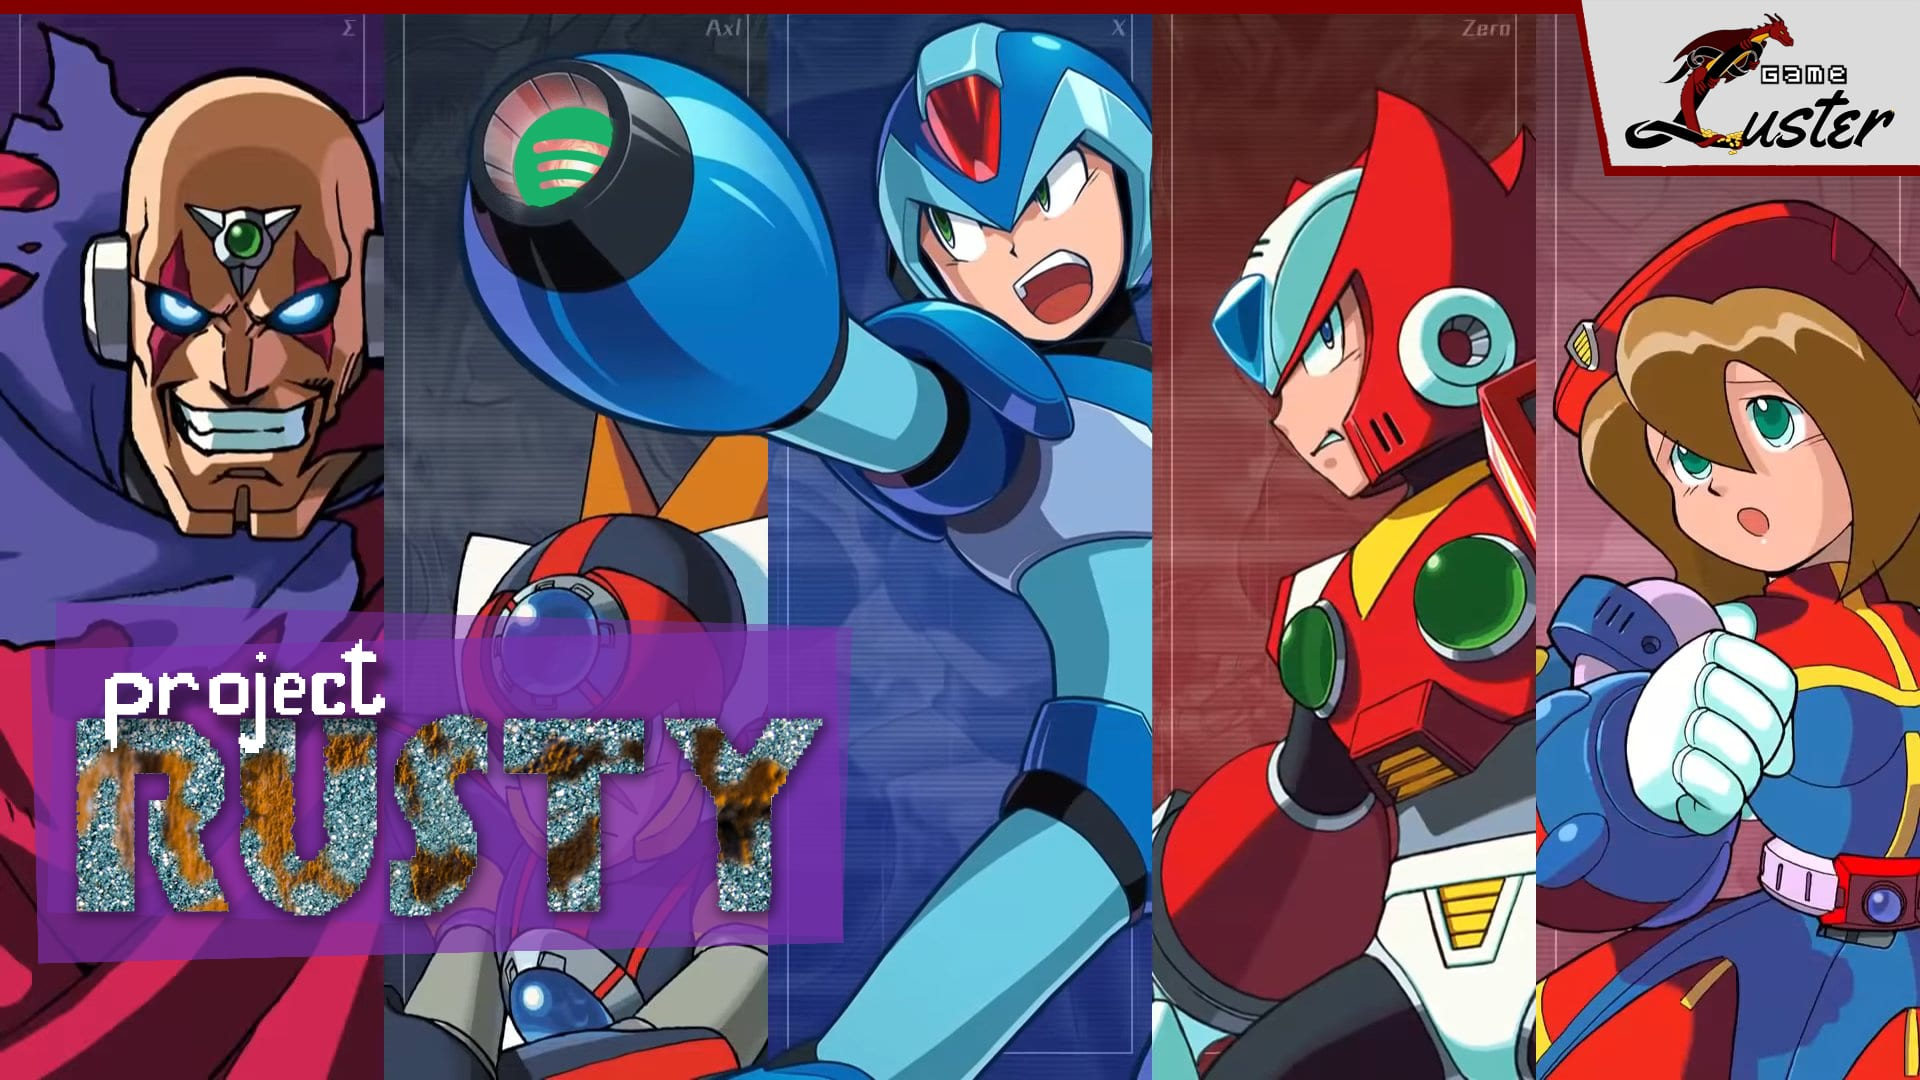 Project Rusty Mega Man X